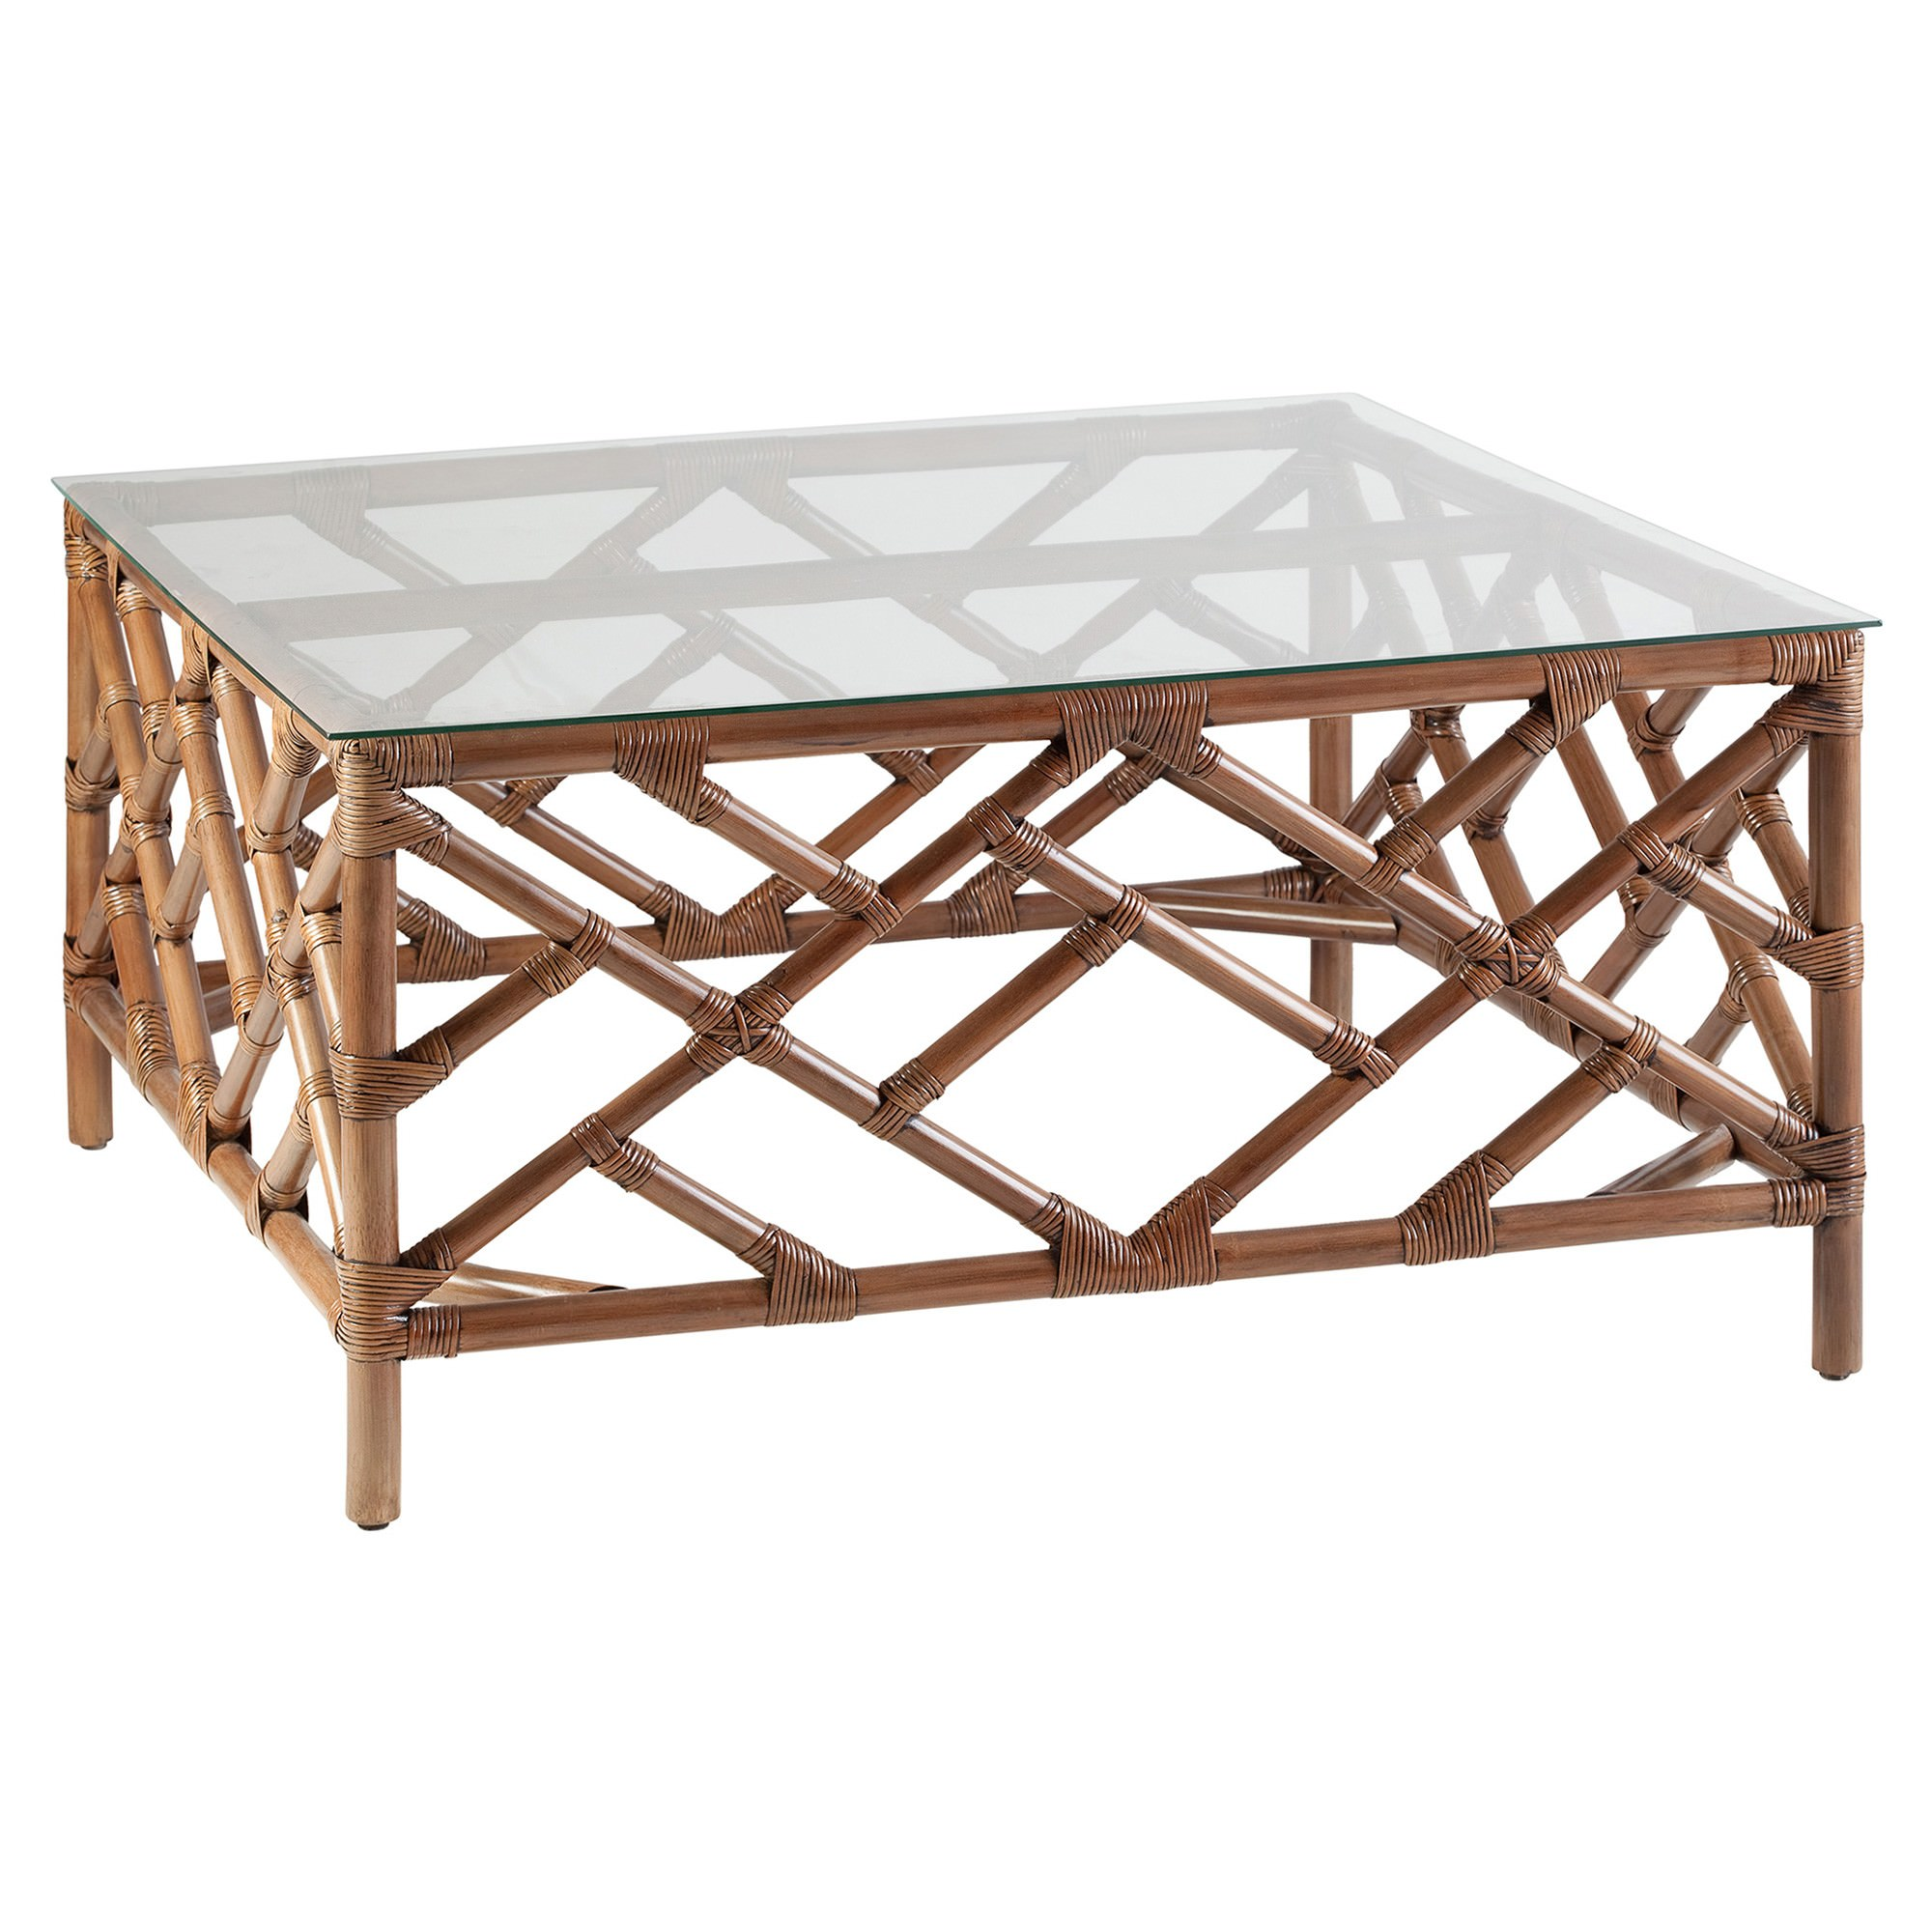 Chippendale Glass Topped Rattan Coffee Table, 100cm